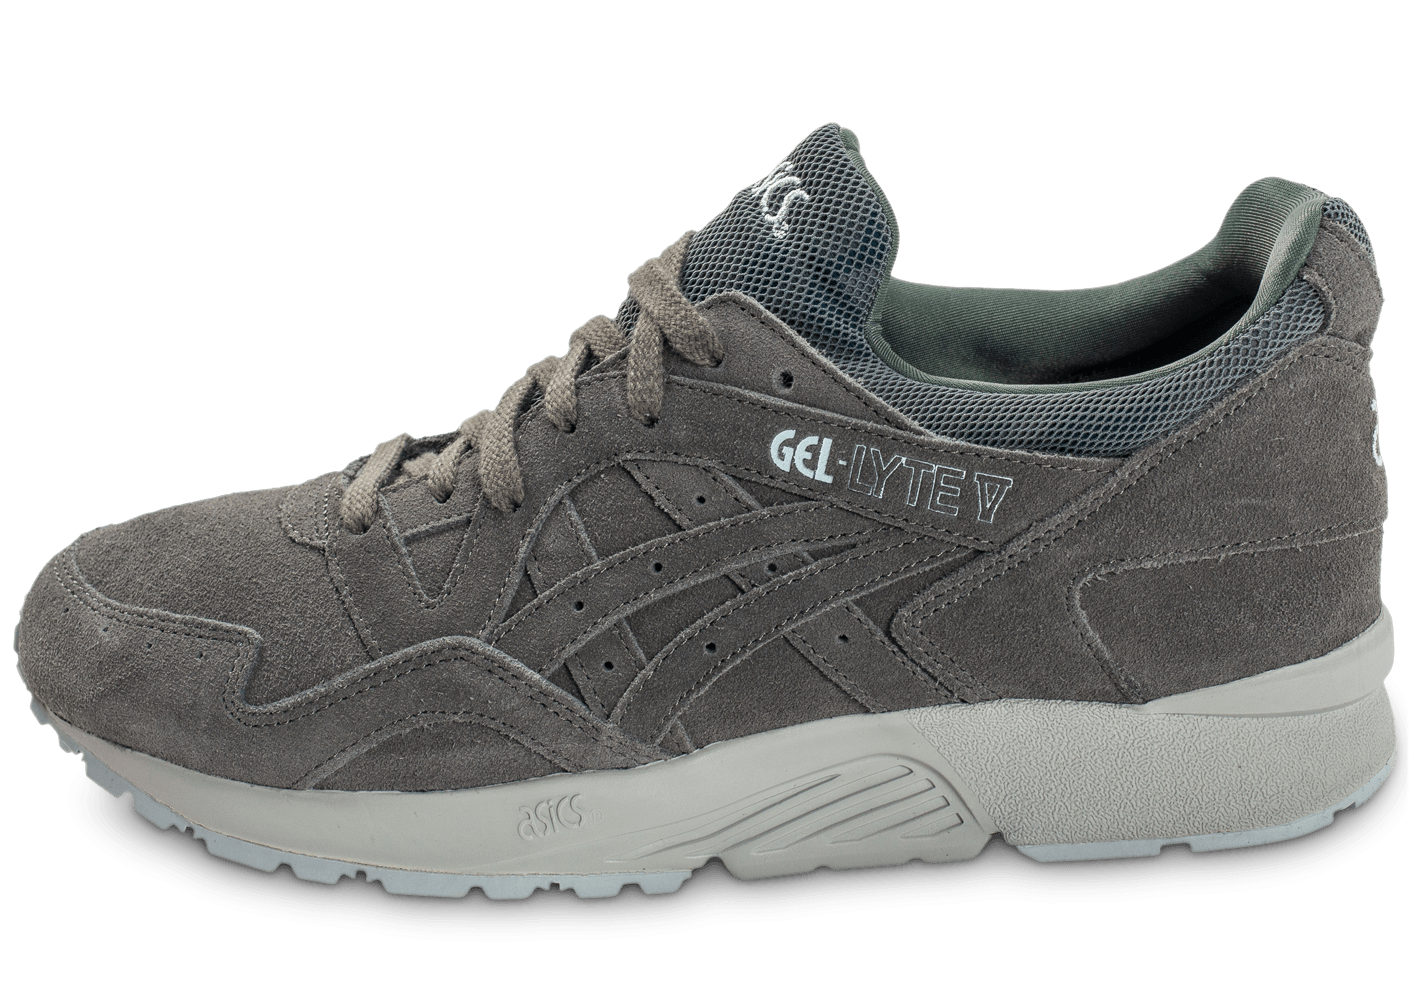 new concept 83467 e2f24 ... real asics gel lyte v camo pack kaki chaussures baskets homme chausport  8cc37 6c819